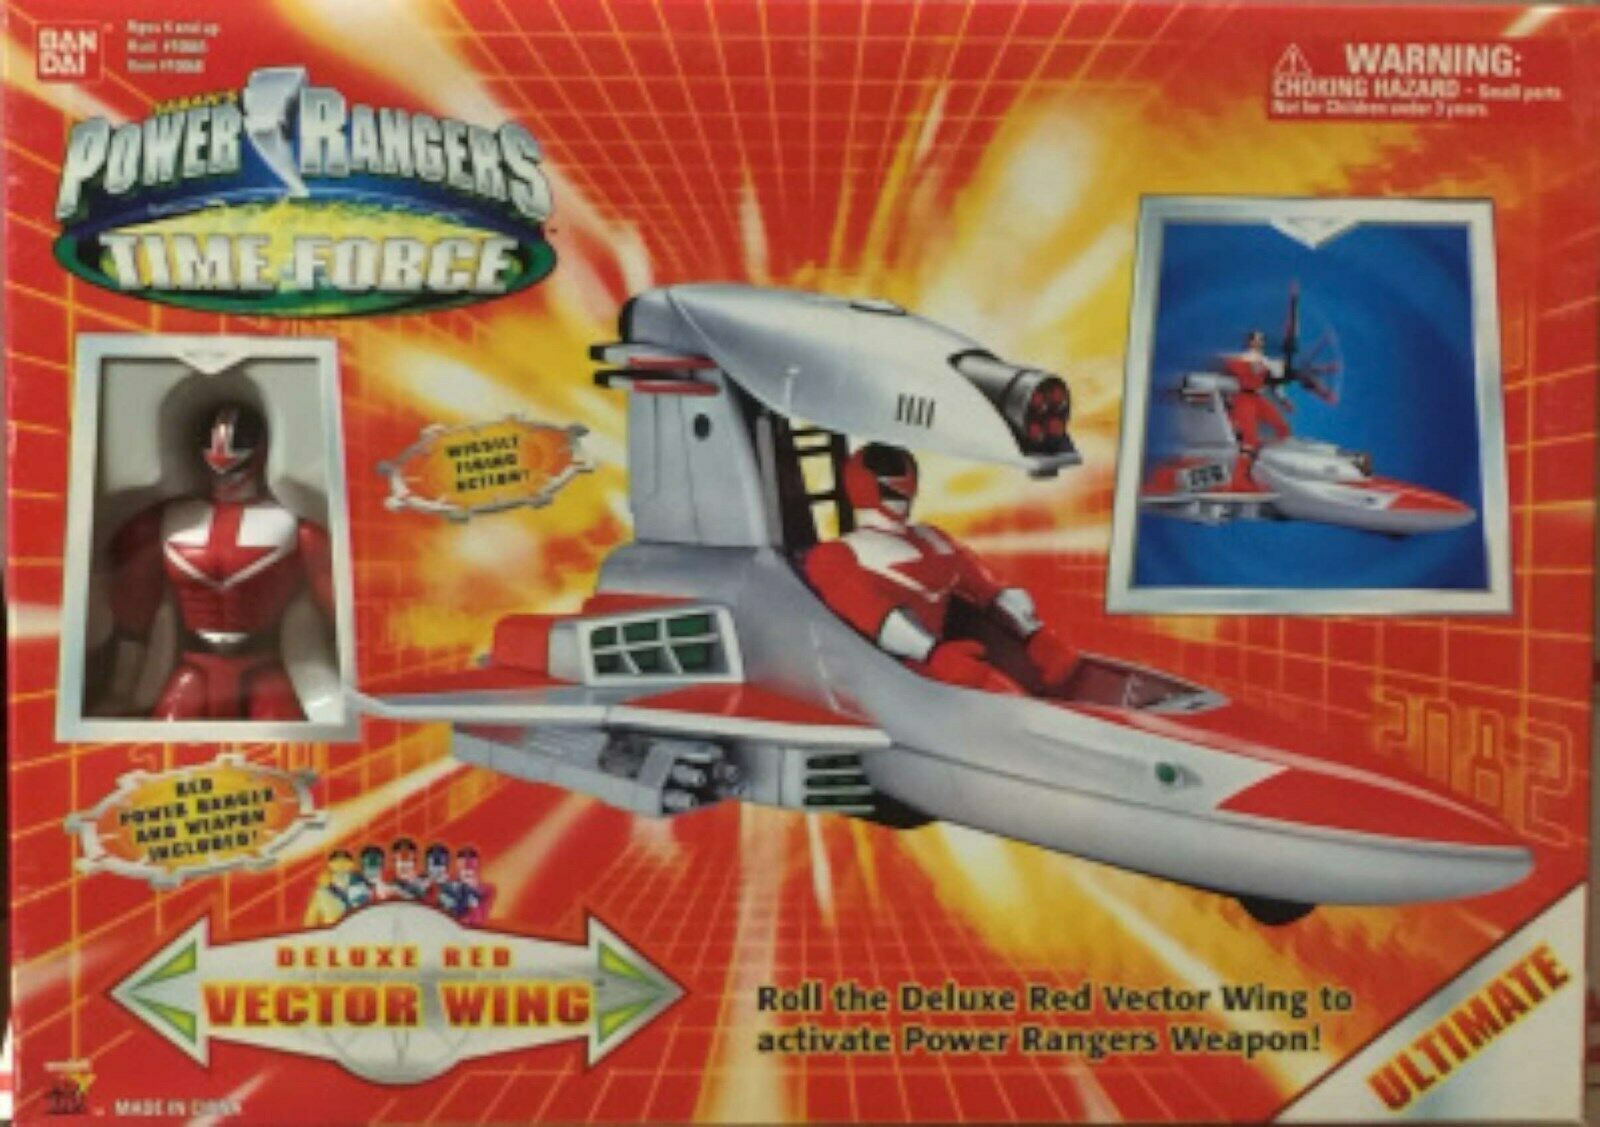 Power Rangers Time Force Deluxe Red Vector Wing  Box RARE NEW